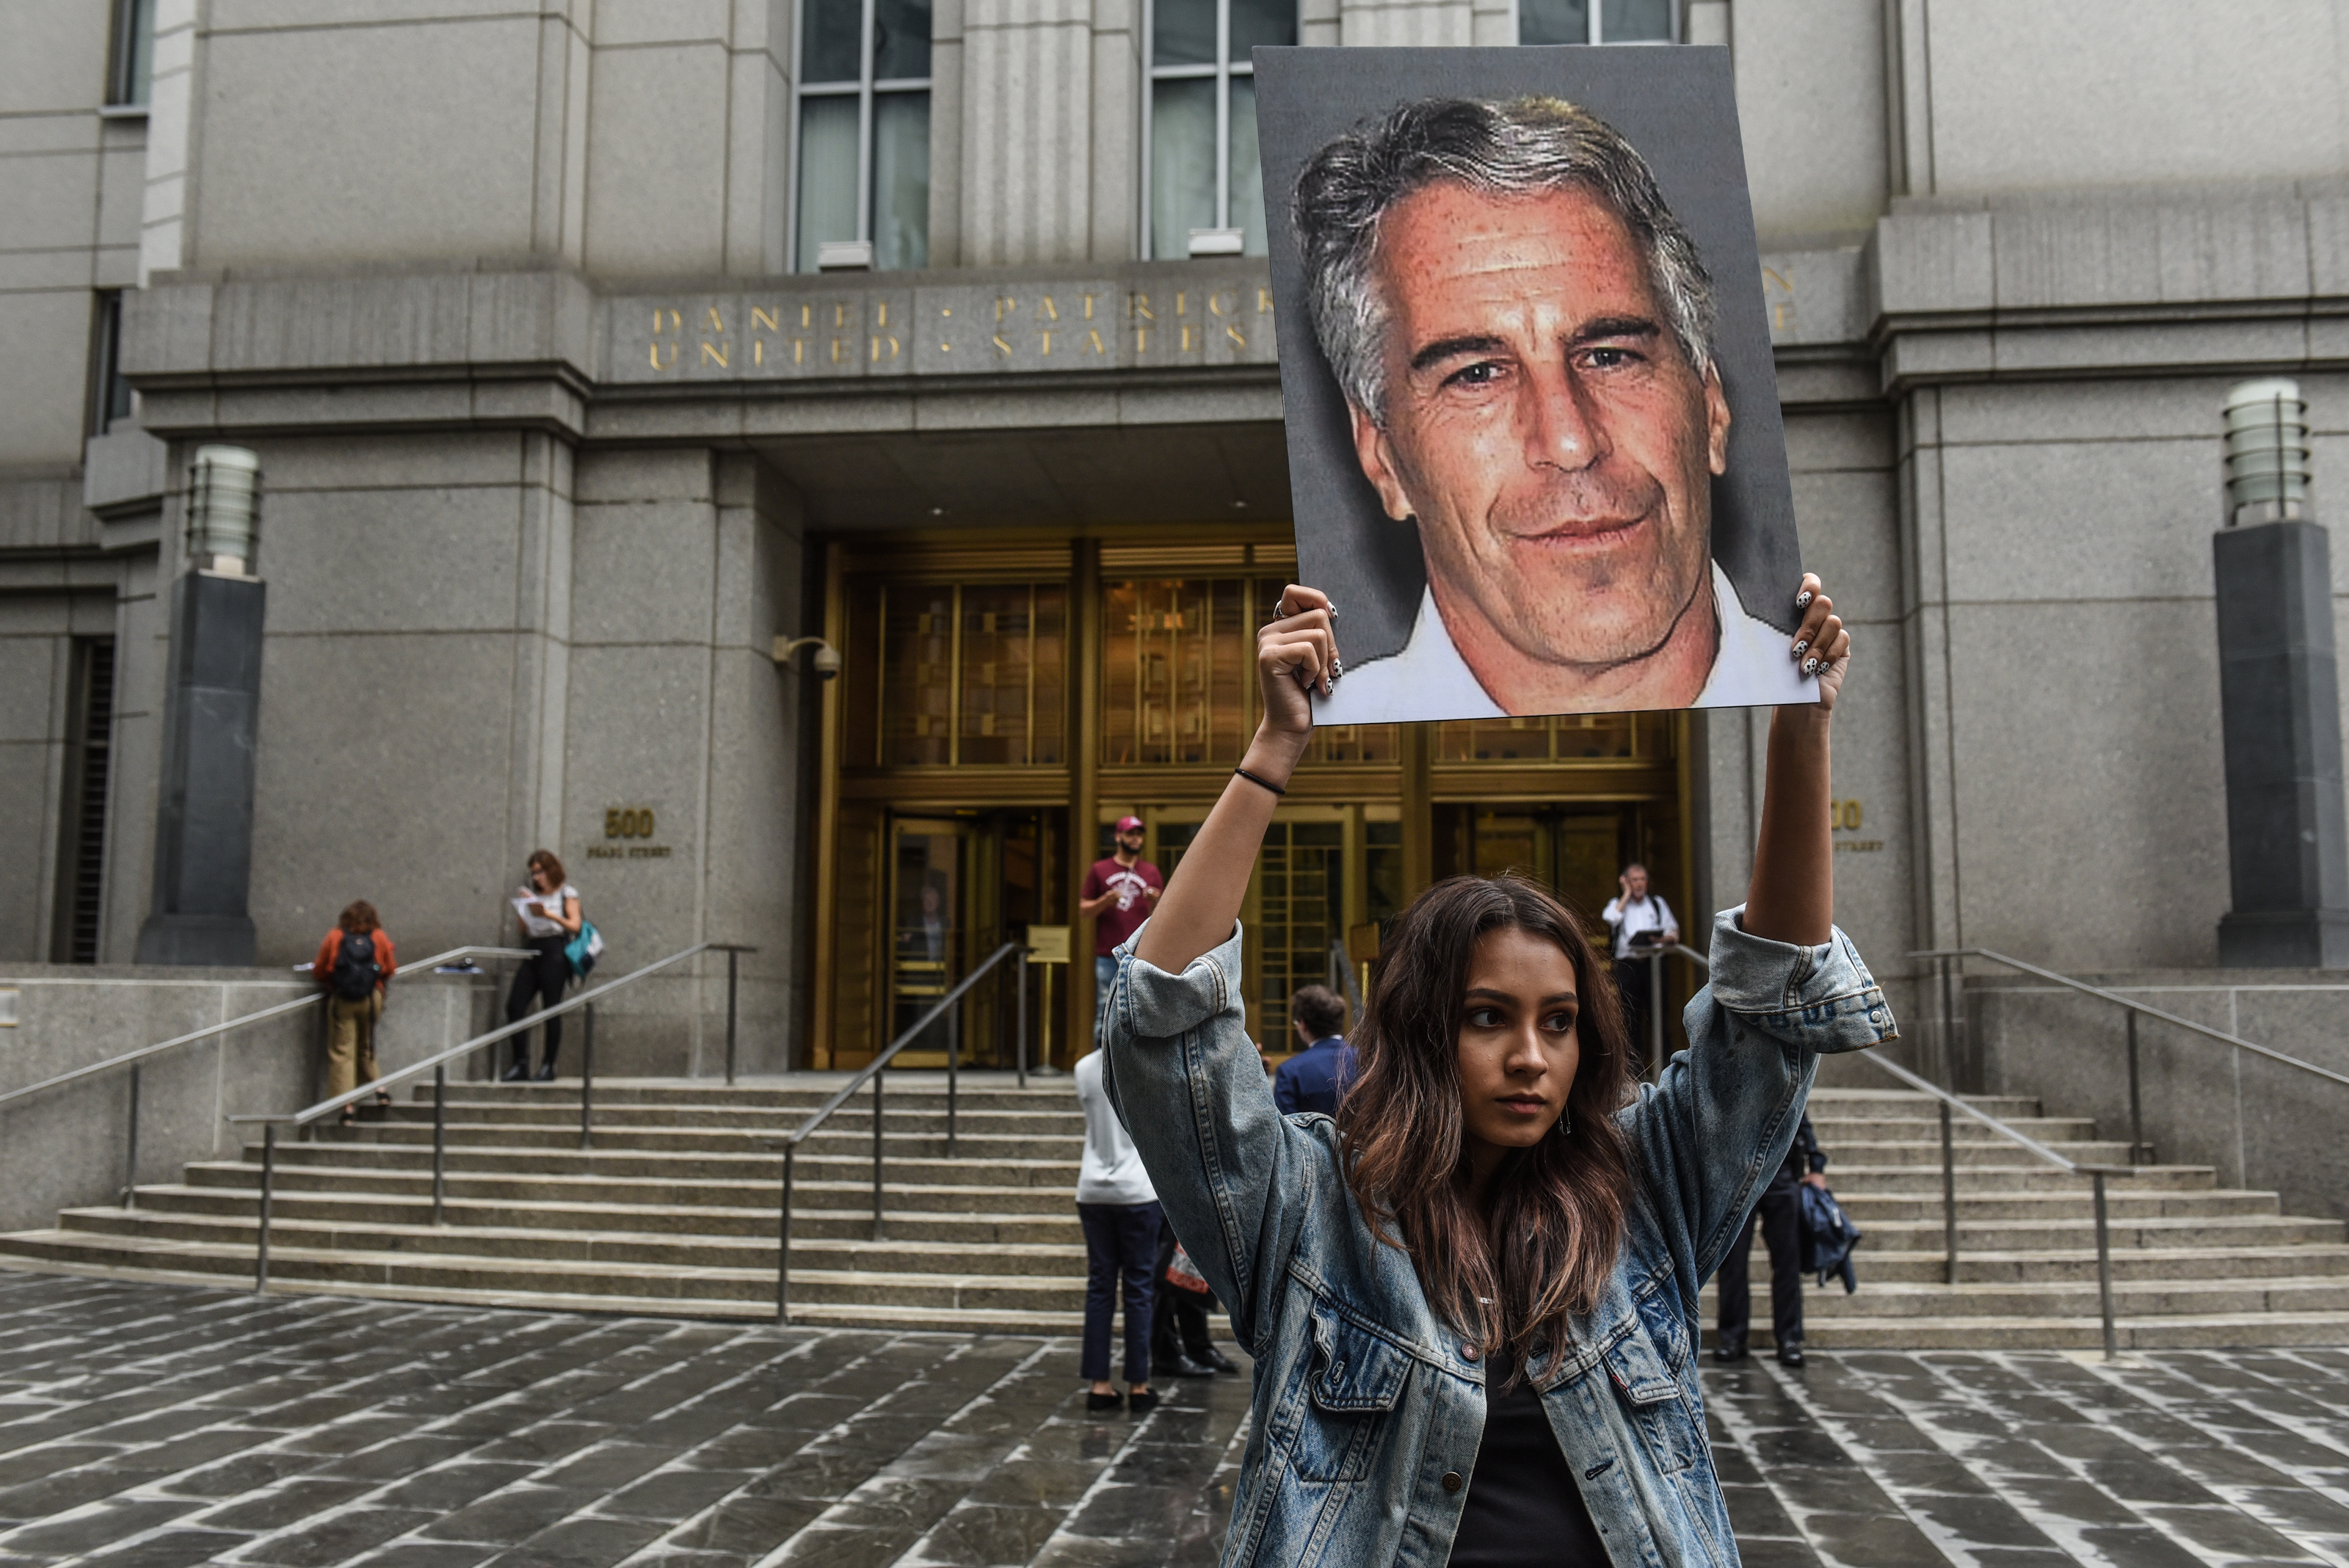 Jeffrey Epstein Appears In Manhattan Federal Court On Sex Trafficking Charges